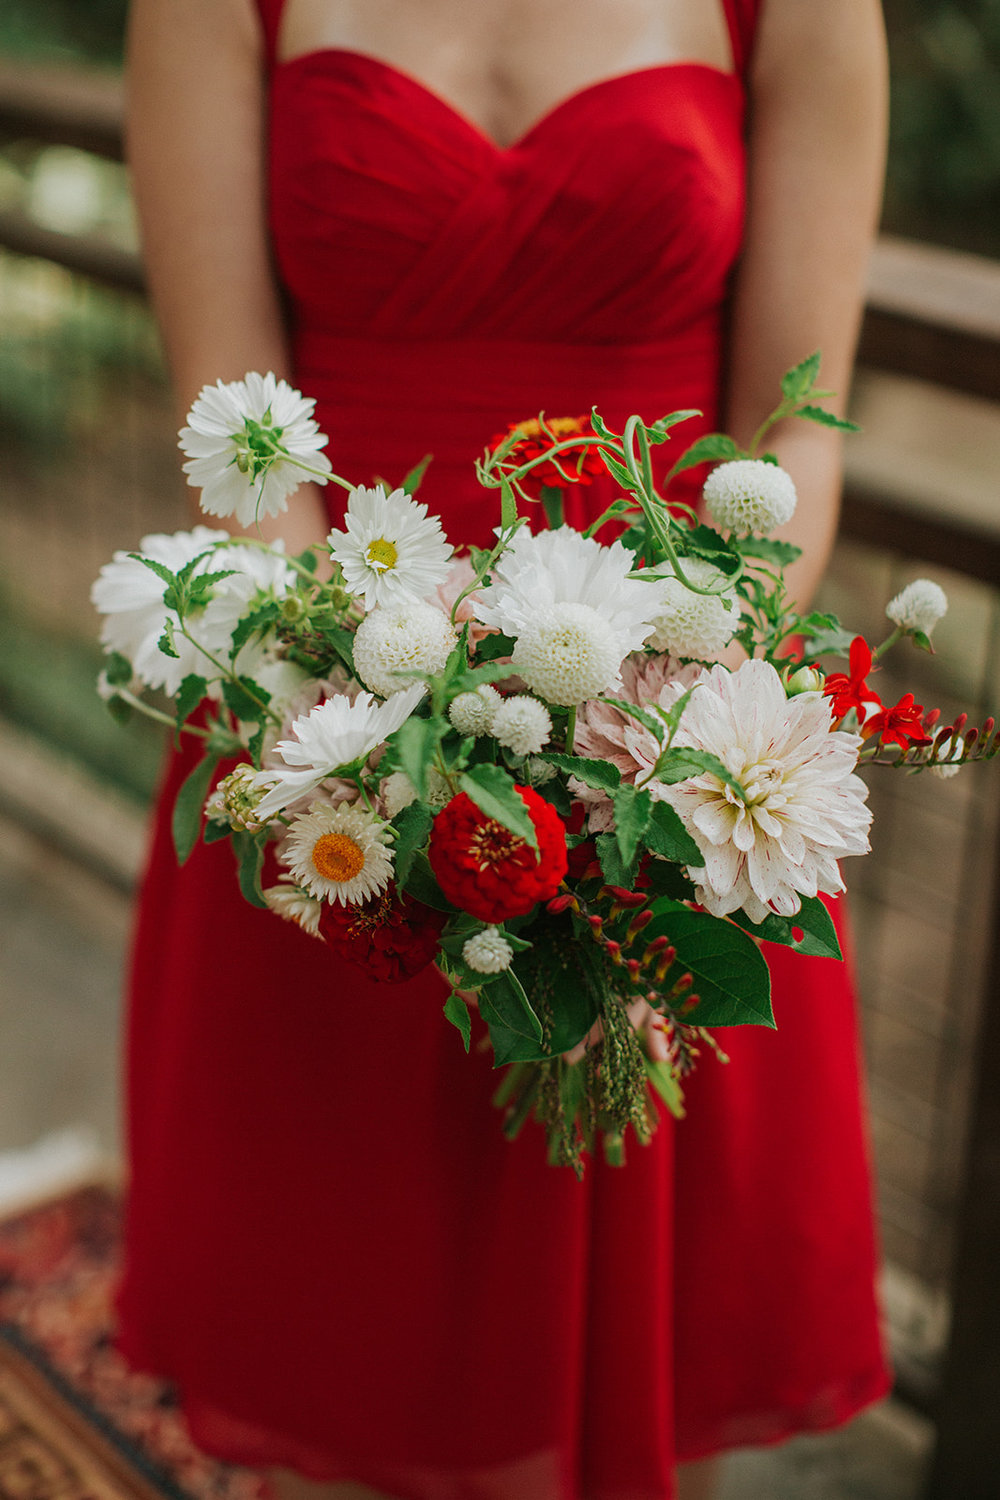 Forest-PArk-Summer-reds-bridesmaid-bouquet.jpg